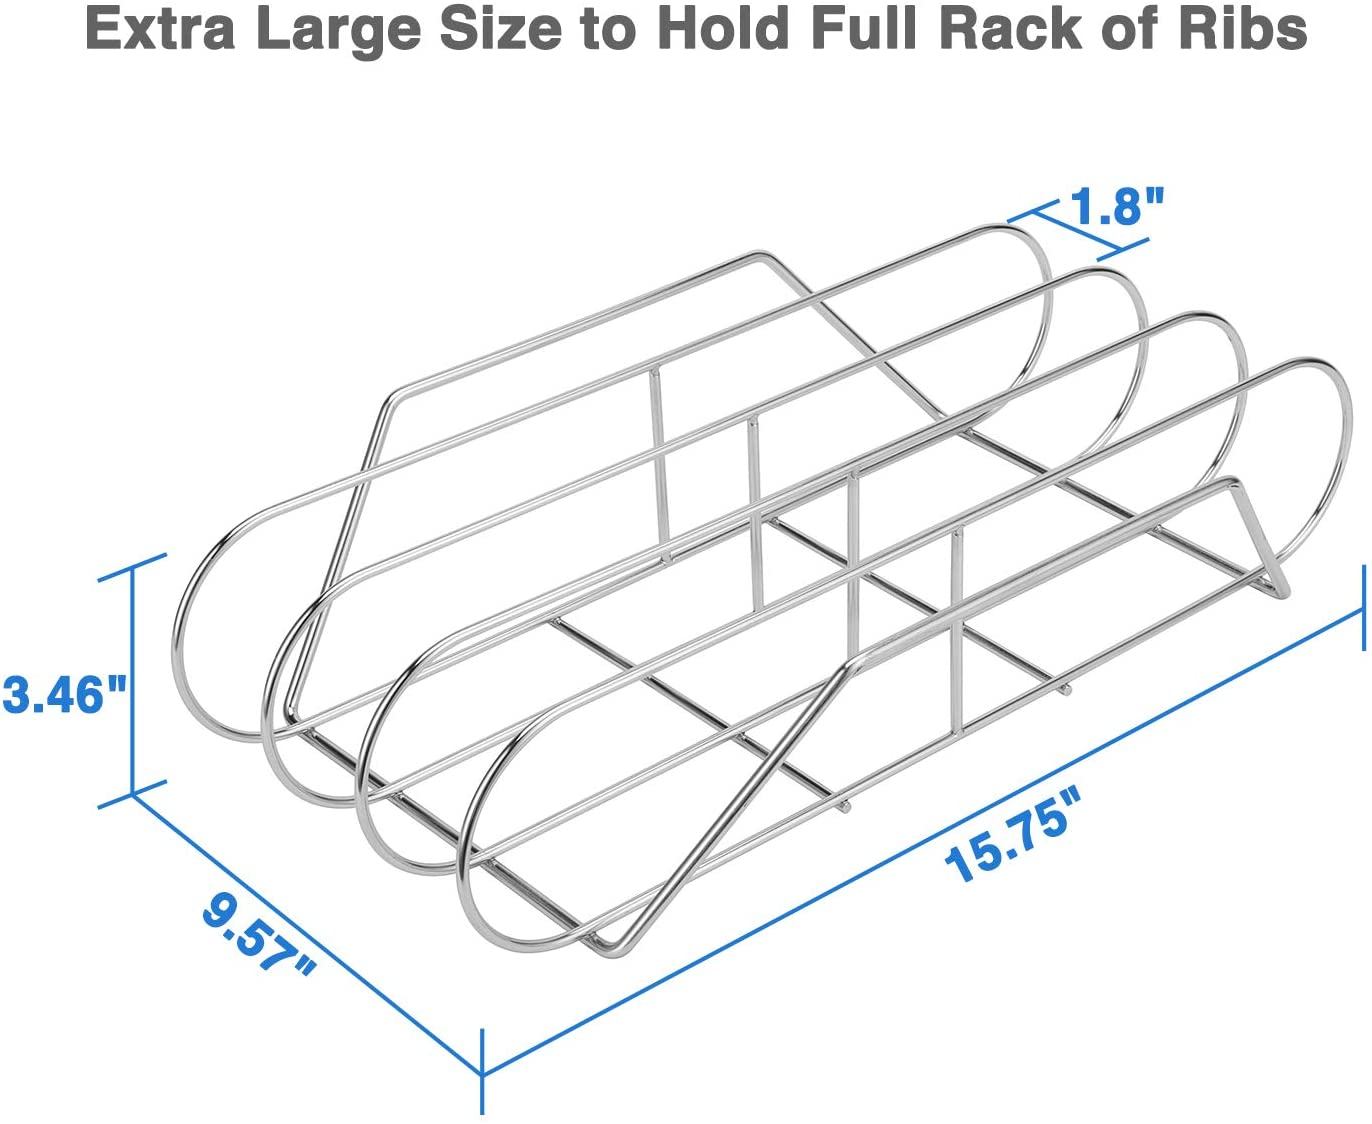 """SOLIGT Extra Long 304 Stainless Steel Rib Rack for 18"""" or Larger Grills - Holds up to 3 Full Racks of Ribs : Garden & Outdoor"""